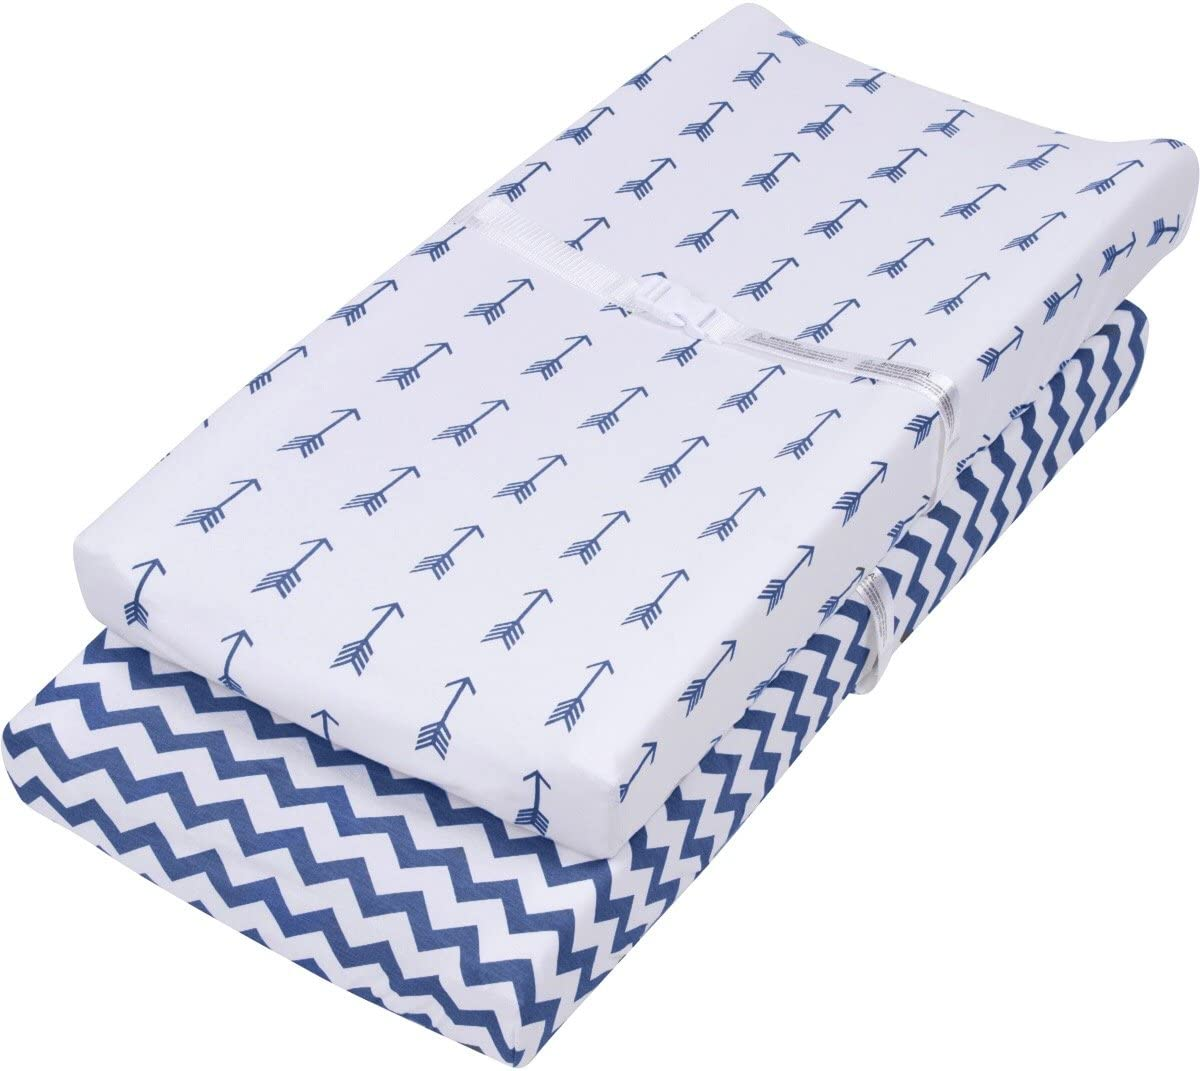 150 GSM Navy and White BaeBae Goods Changing Pad Cover Set 3 Pack Cradle Bassinet Sheets//Change Table Covers for Boys /& Girls Super Soft 100/% Jersey Knit Cotton